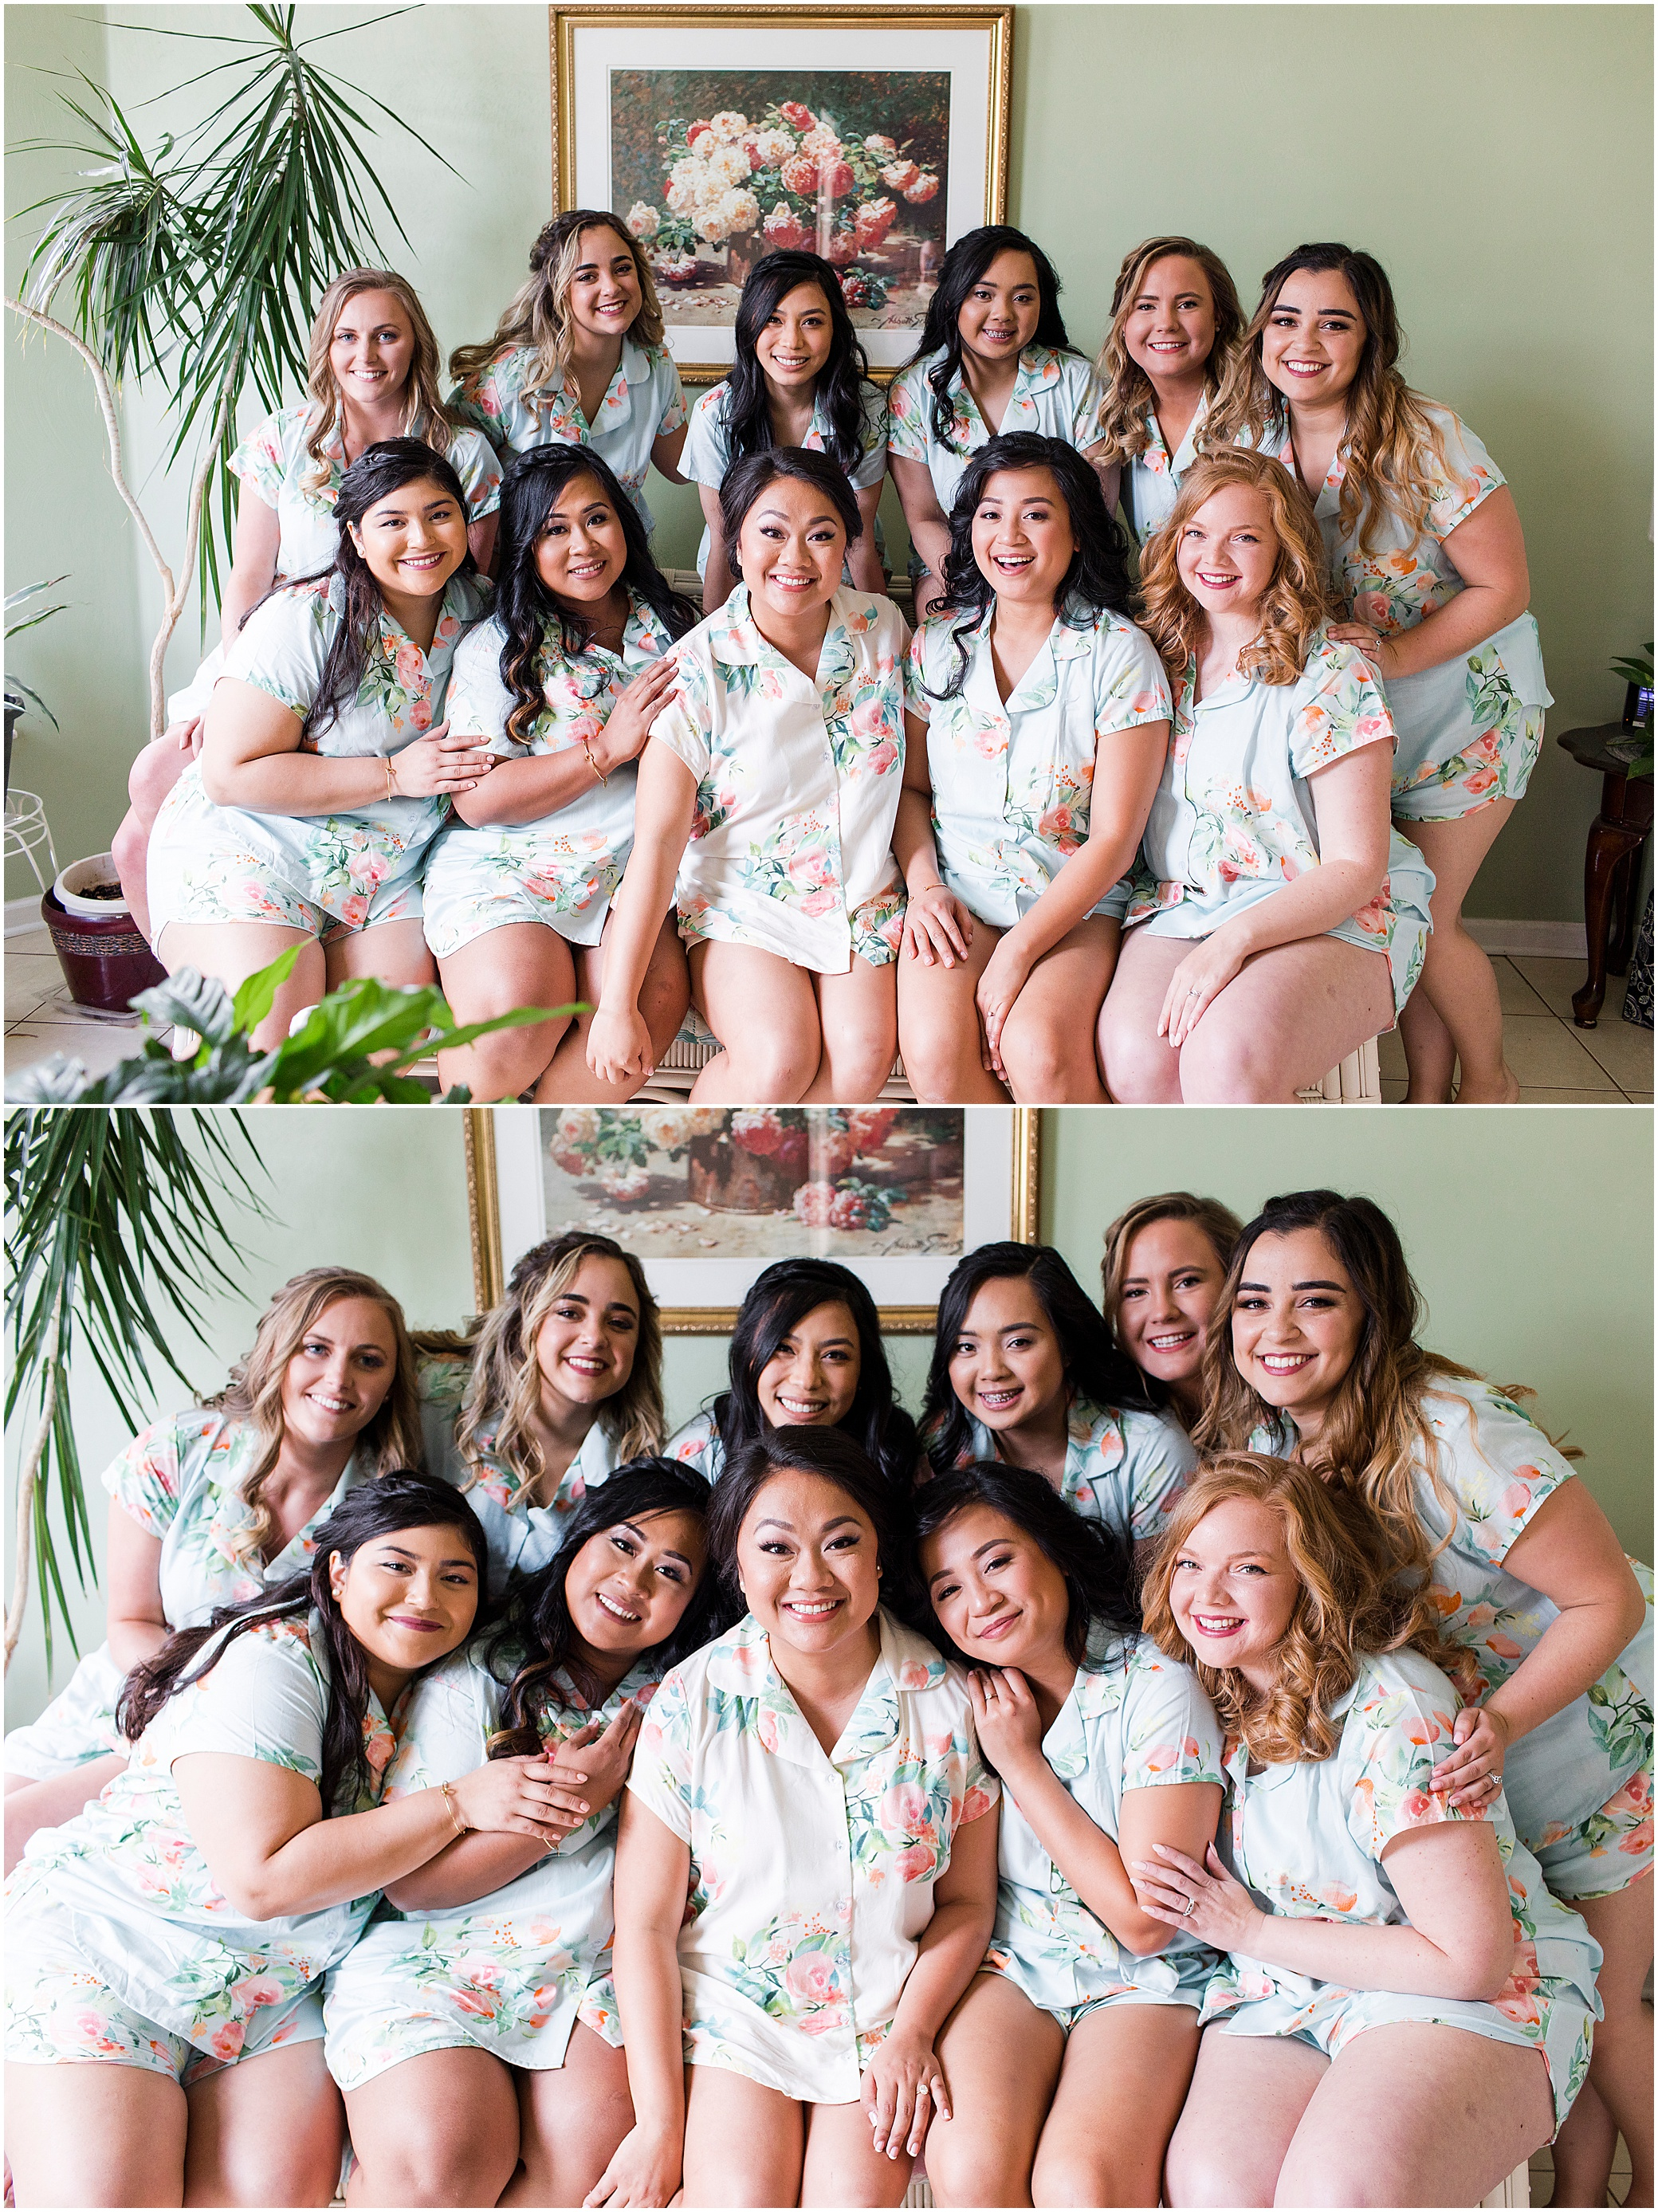 spring wedding at the hermitage museum and gardens, Jessica Ryan photography, bridesmaids in matching pjs